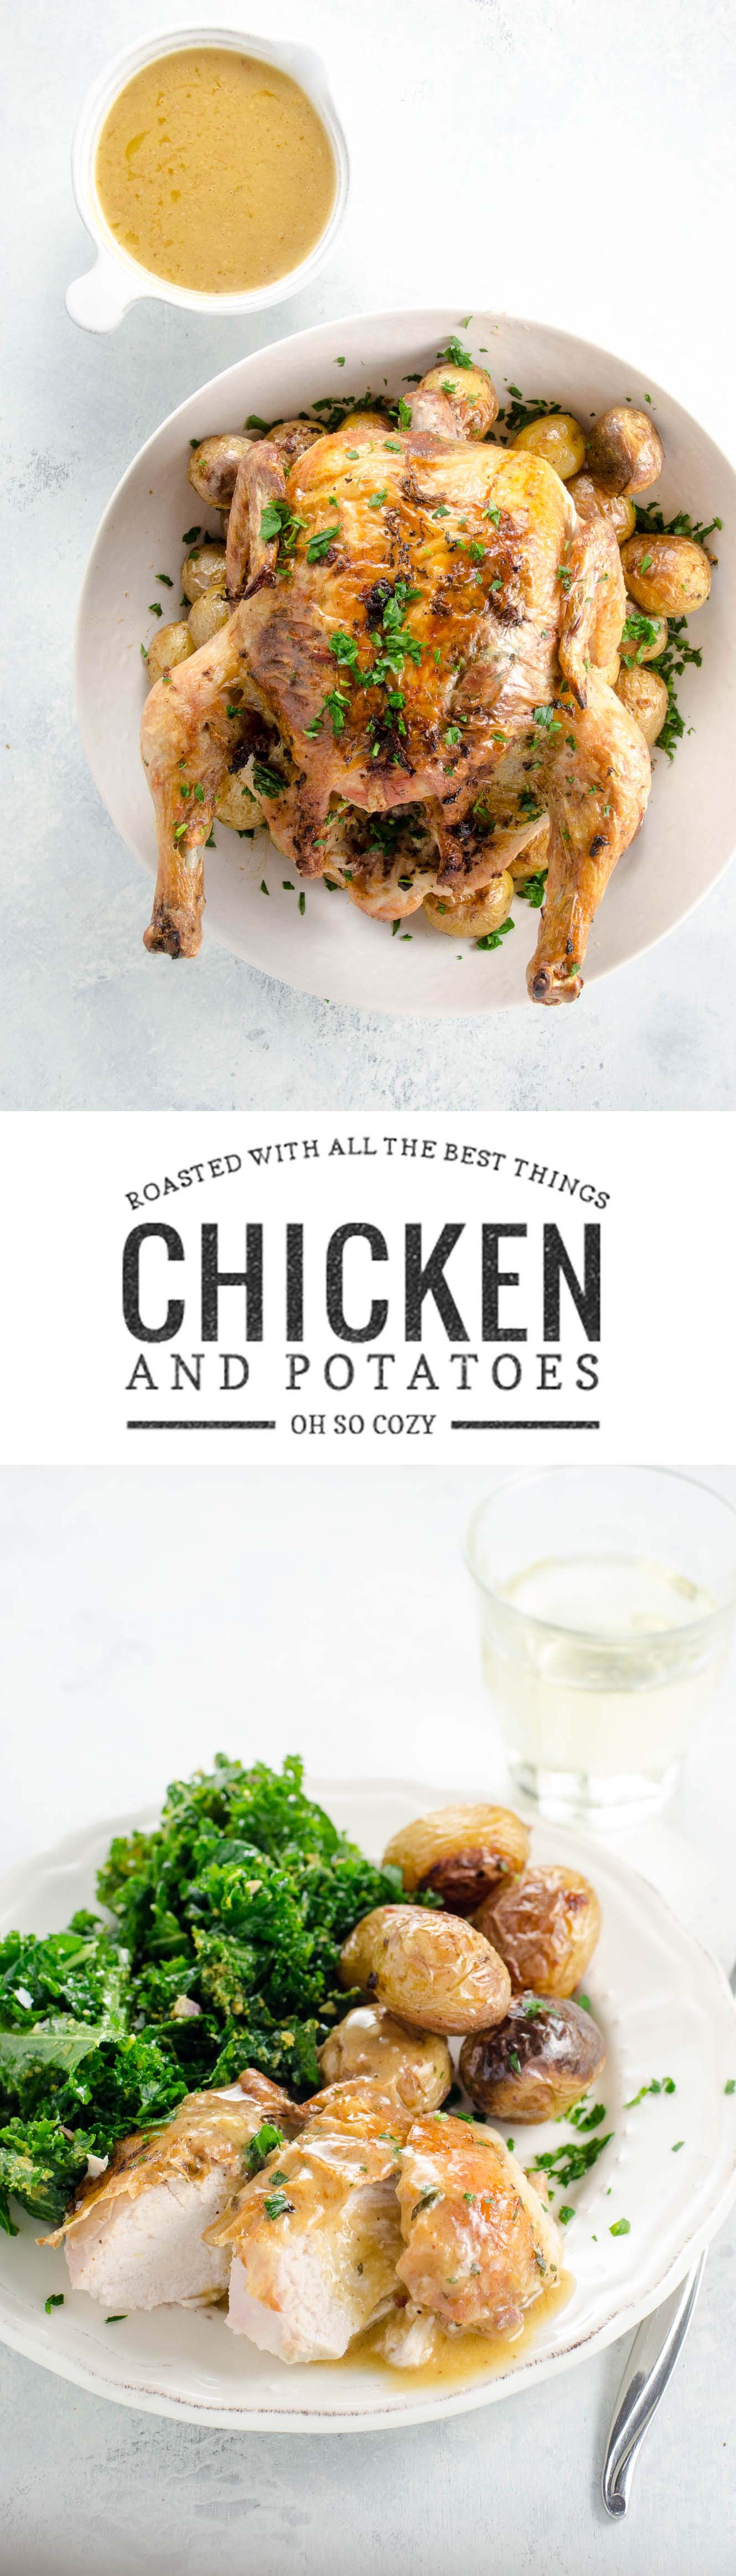 Easy roast chicken and potatoes with lots of savory flavor makes a great dinner party for six without a lot of hassle. Just add a simple salad and some wine.